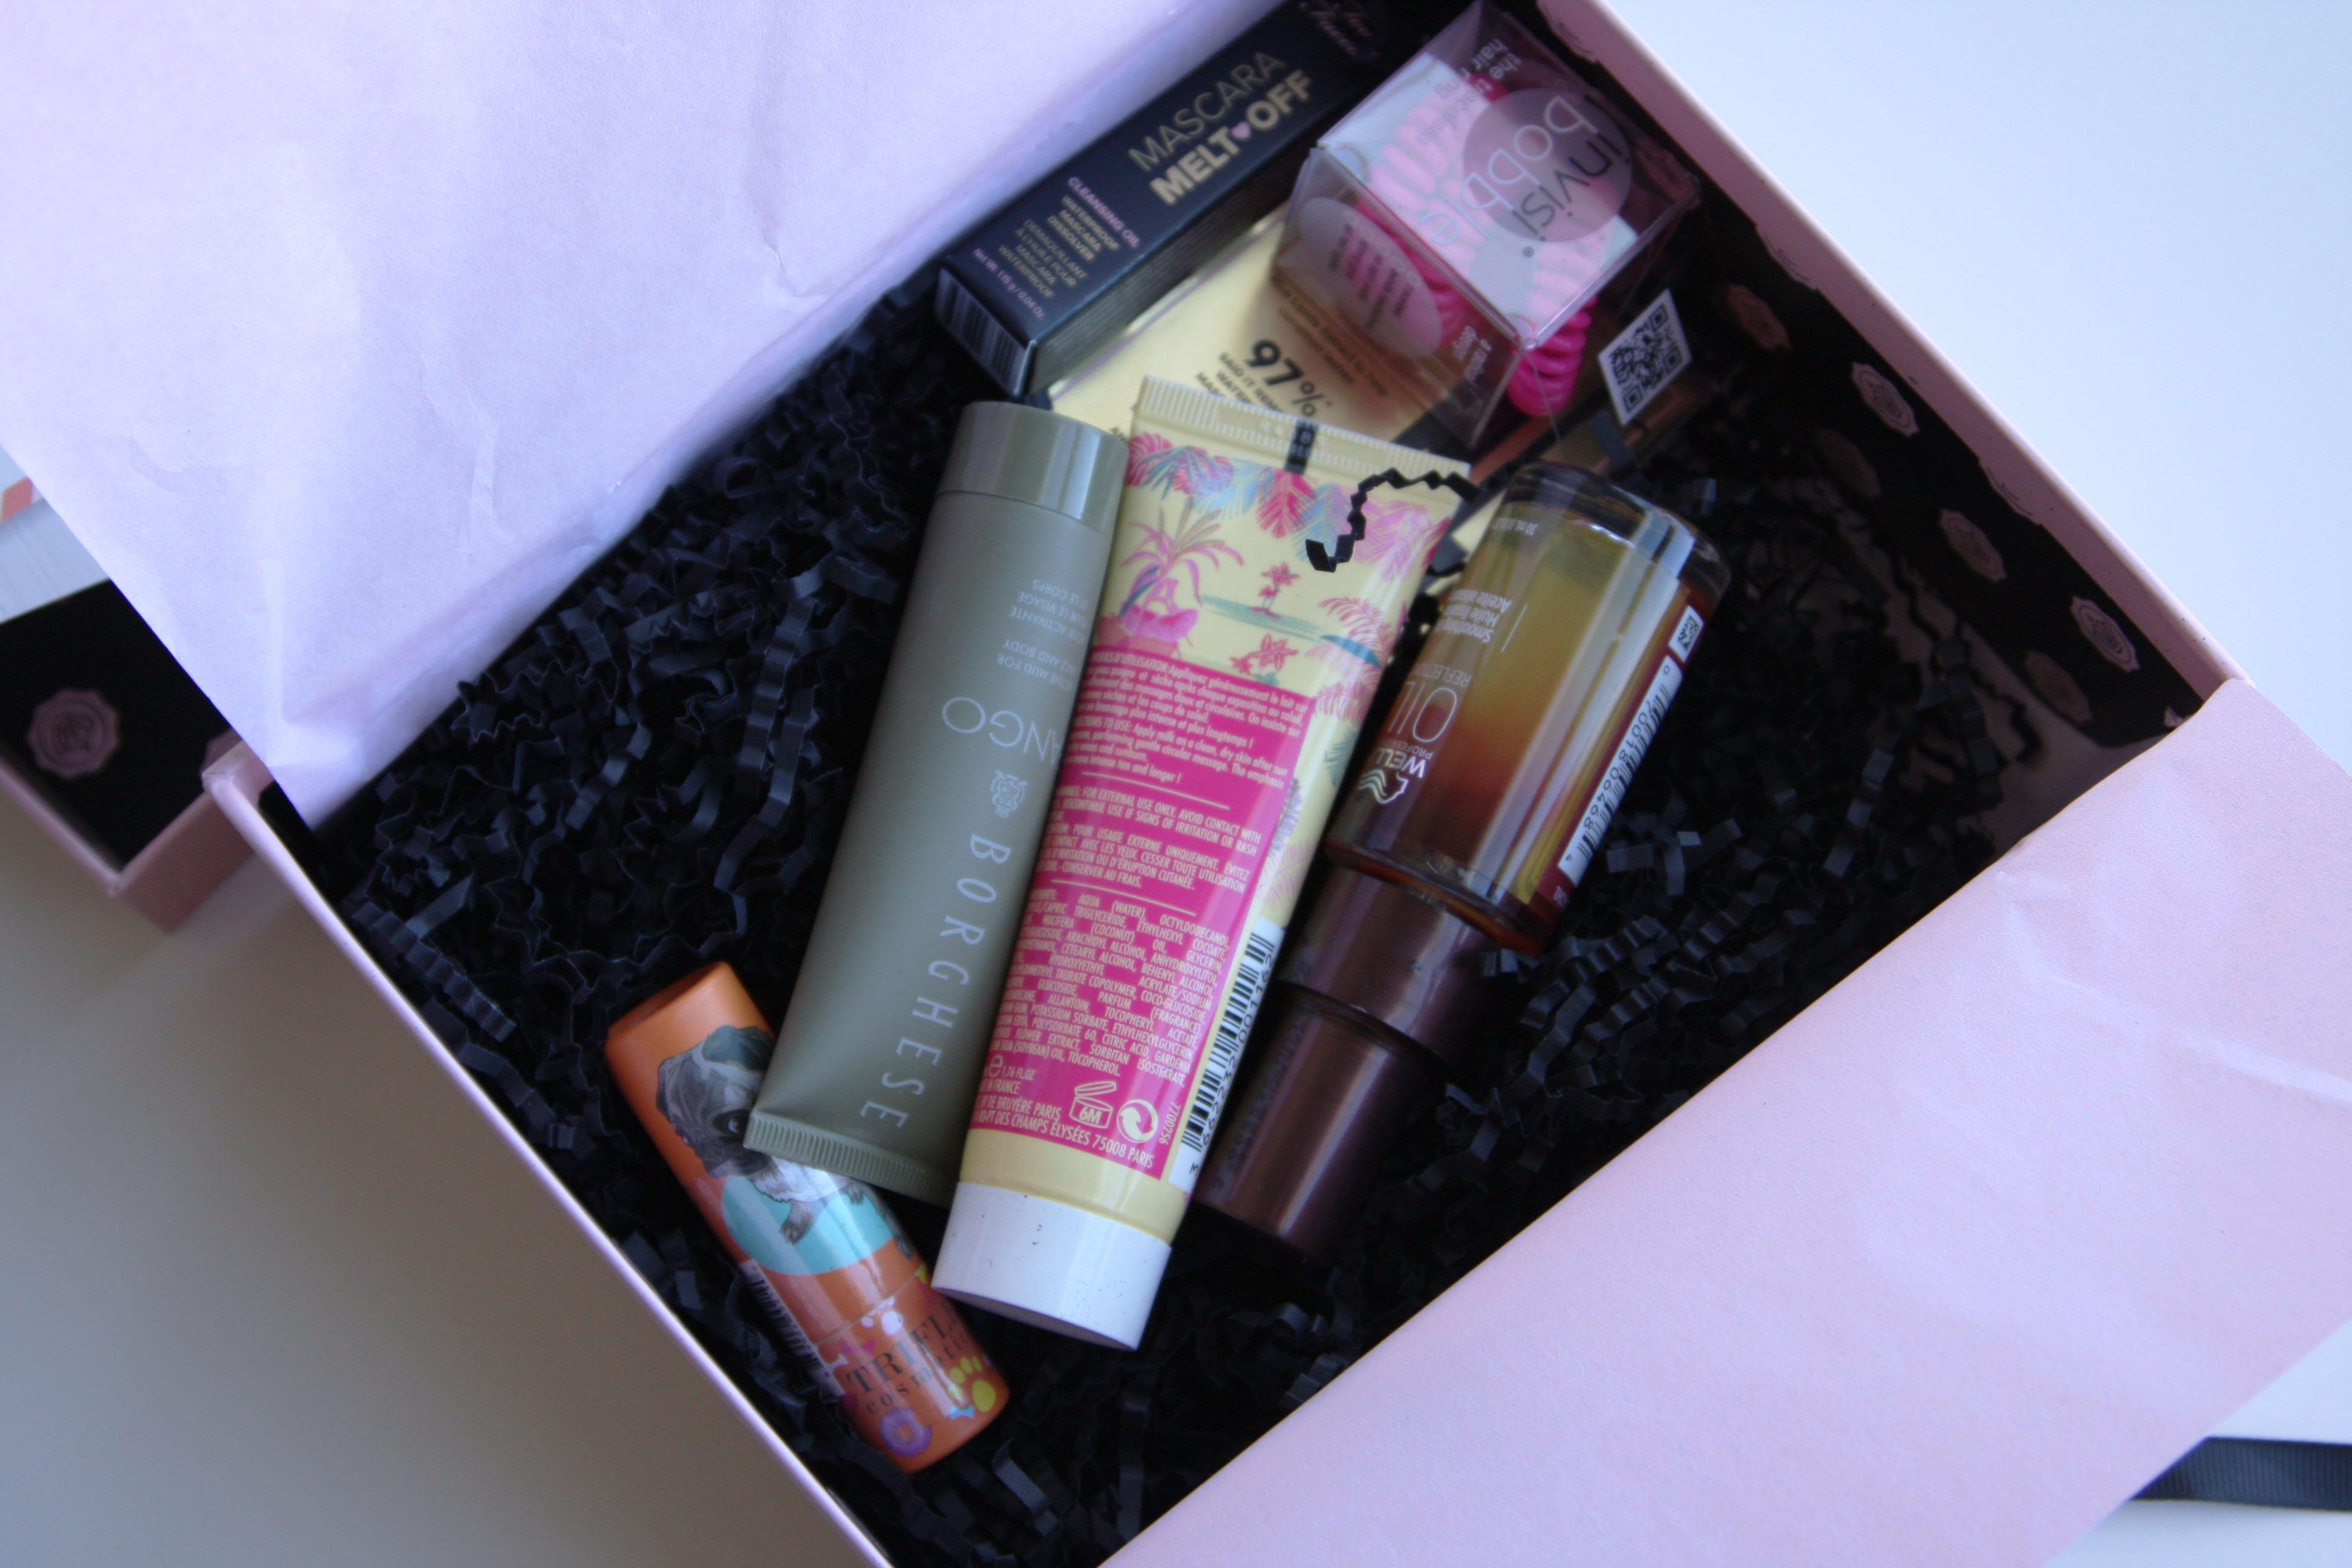 the August GlossyBox contents